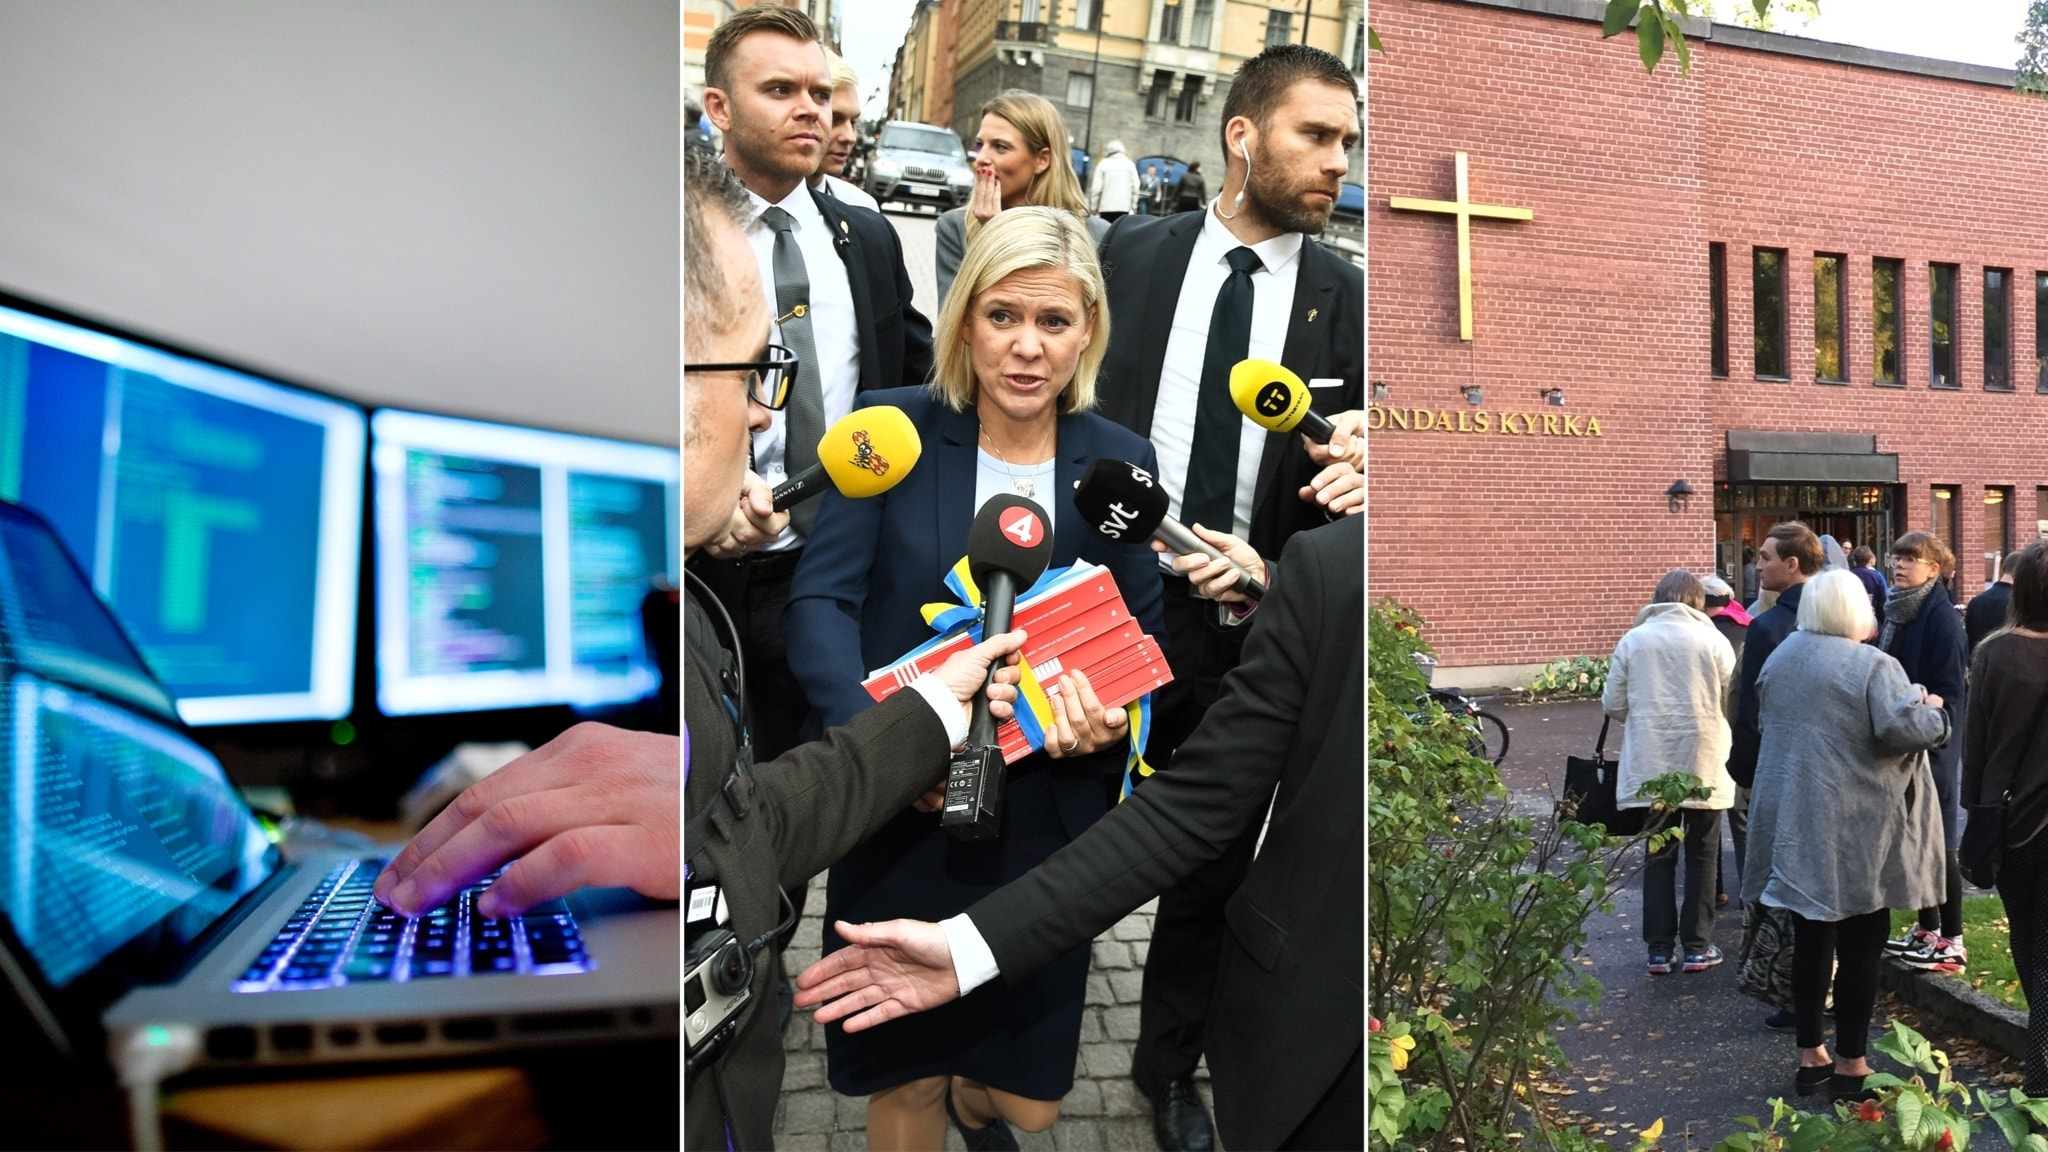 Budget billions, hacking trial and church elections